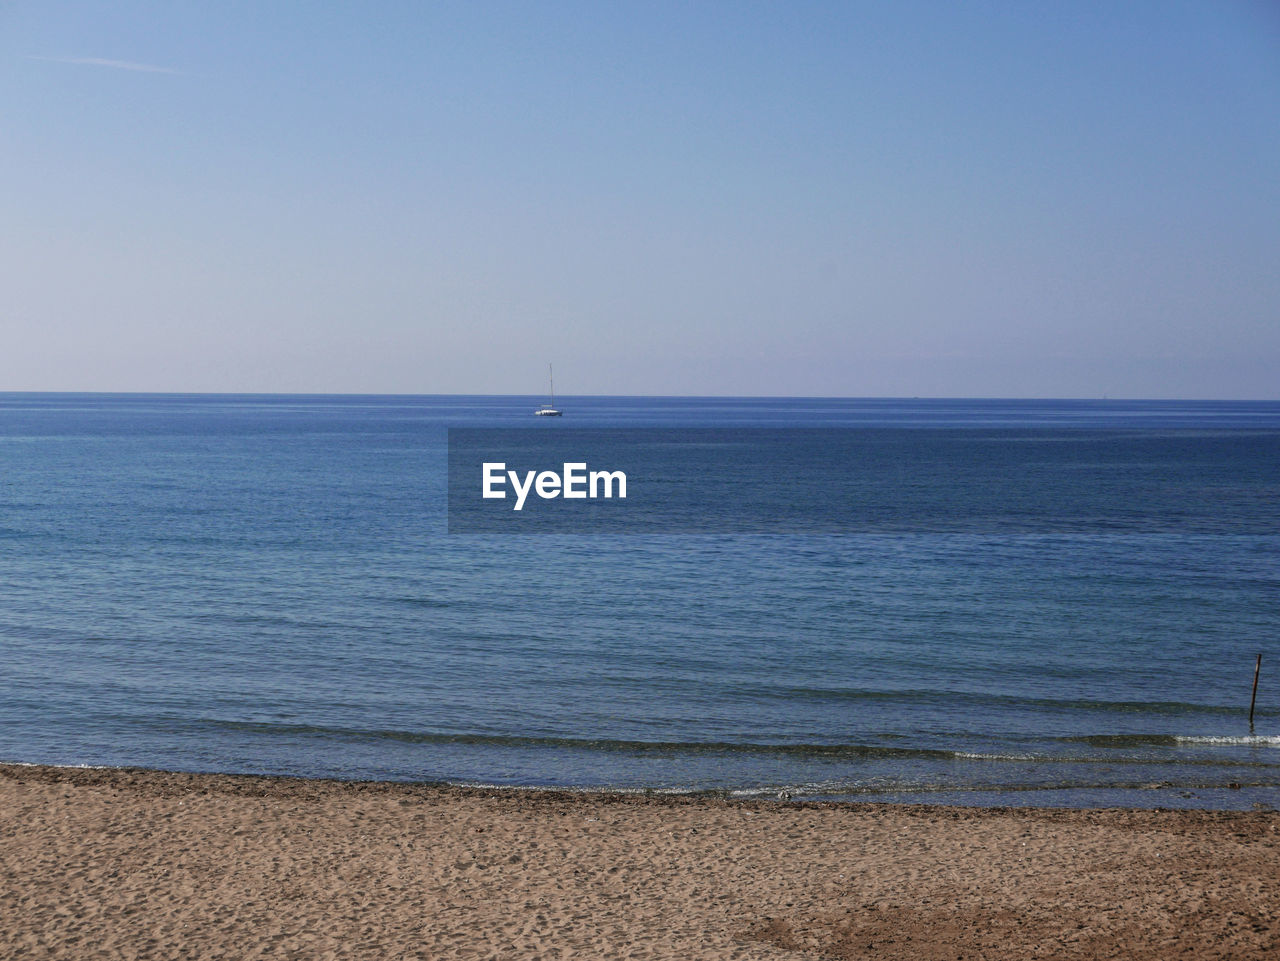 sea, water, horizon, sky, scenics - nature, horizon over water, beauty in nature, tranquility, tranquil scene, land, clear sky, beach, idyllic, copy space, nature, no people, non-urban scene, day, blue